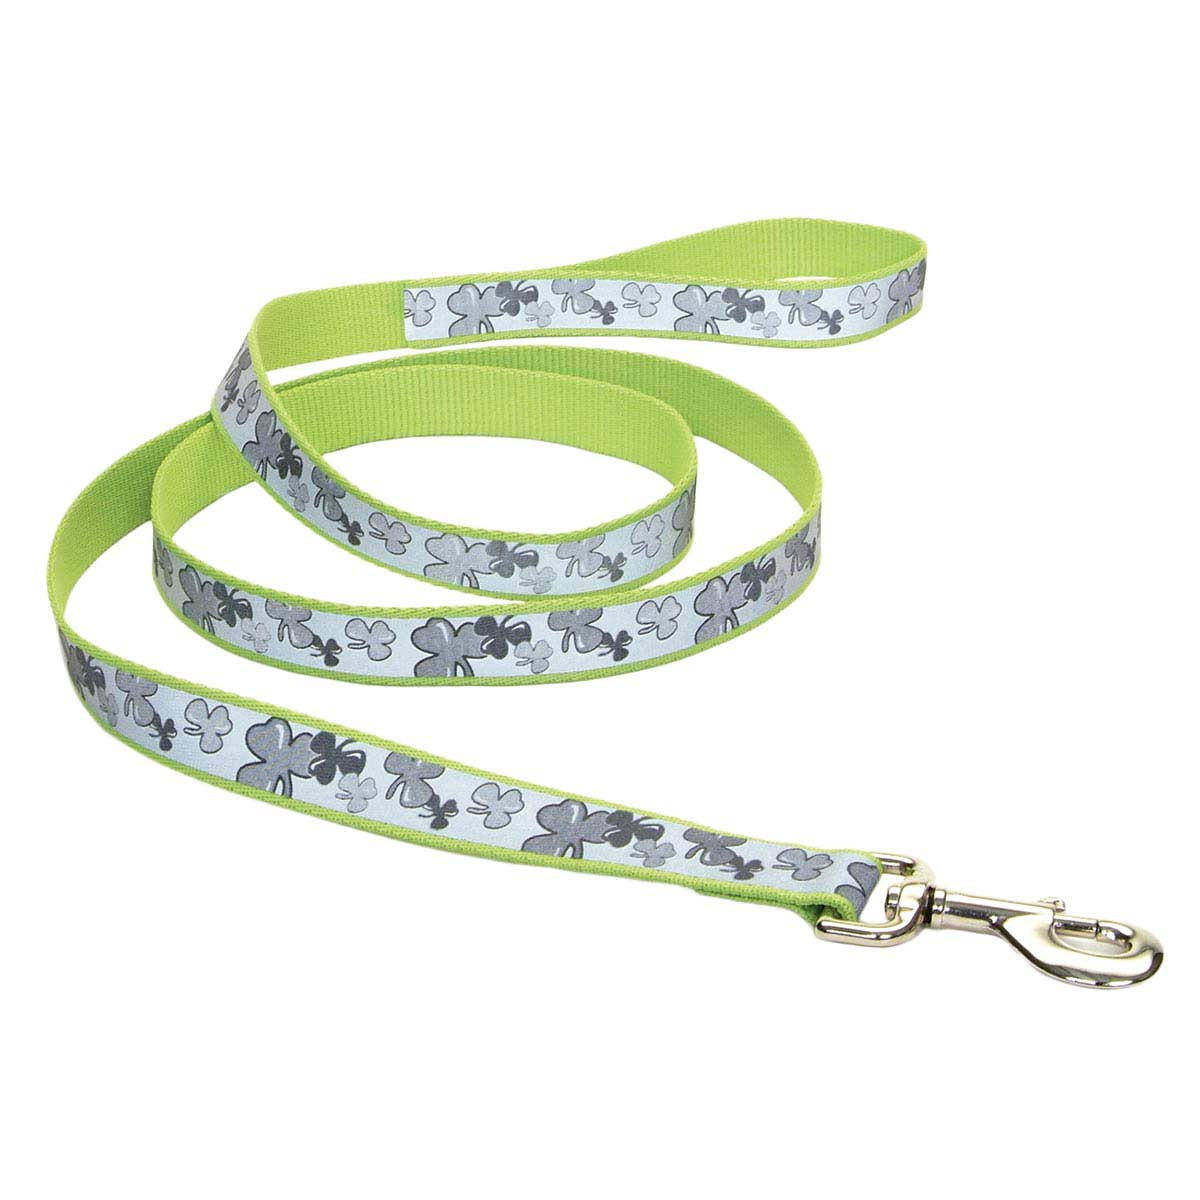 6 feet long by 1 in - Coastal Lazer Brite Green Reflective Leash for Dogs - Shamrock Pattern